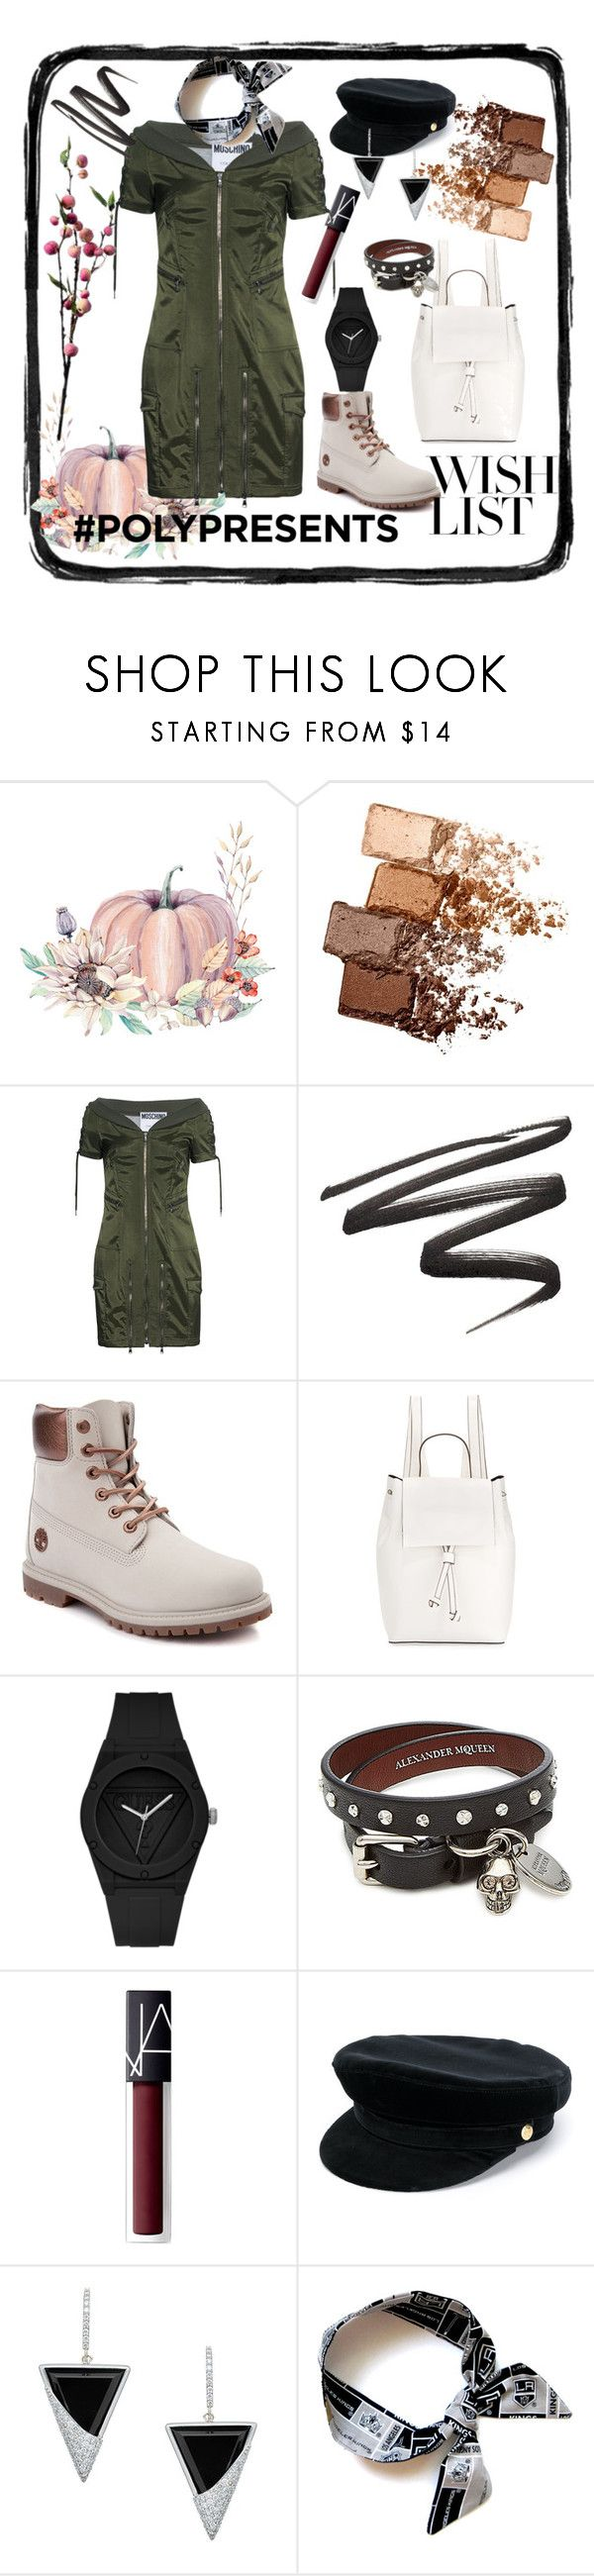 """""""#PolyPresents: Wish List"""" by shxfire ❤ liked on Polyvore featuring Maybelline, Moschino, Timberland, French Connection, GUESS, Alexander McQueen, NARS Cosmetics, Manokhi, Lana Jewelry and Wyld Home"""